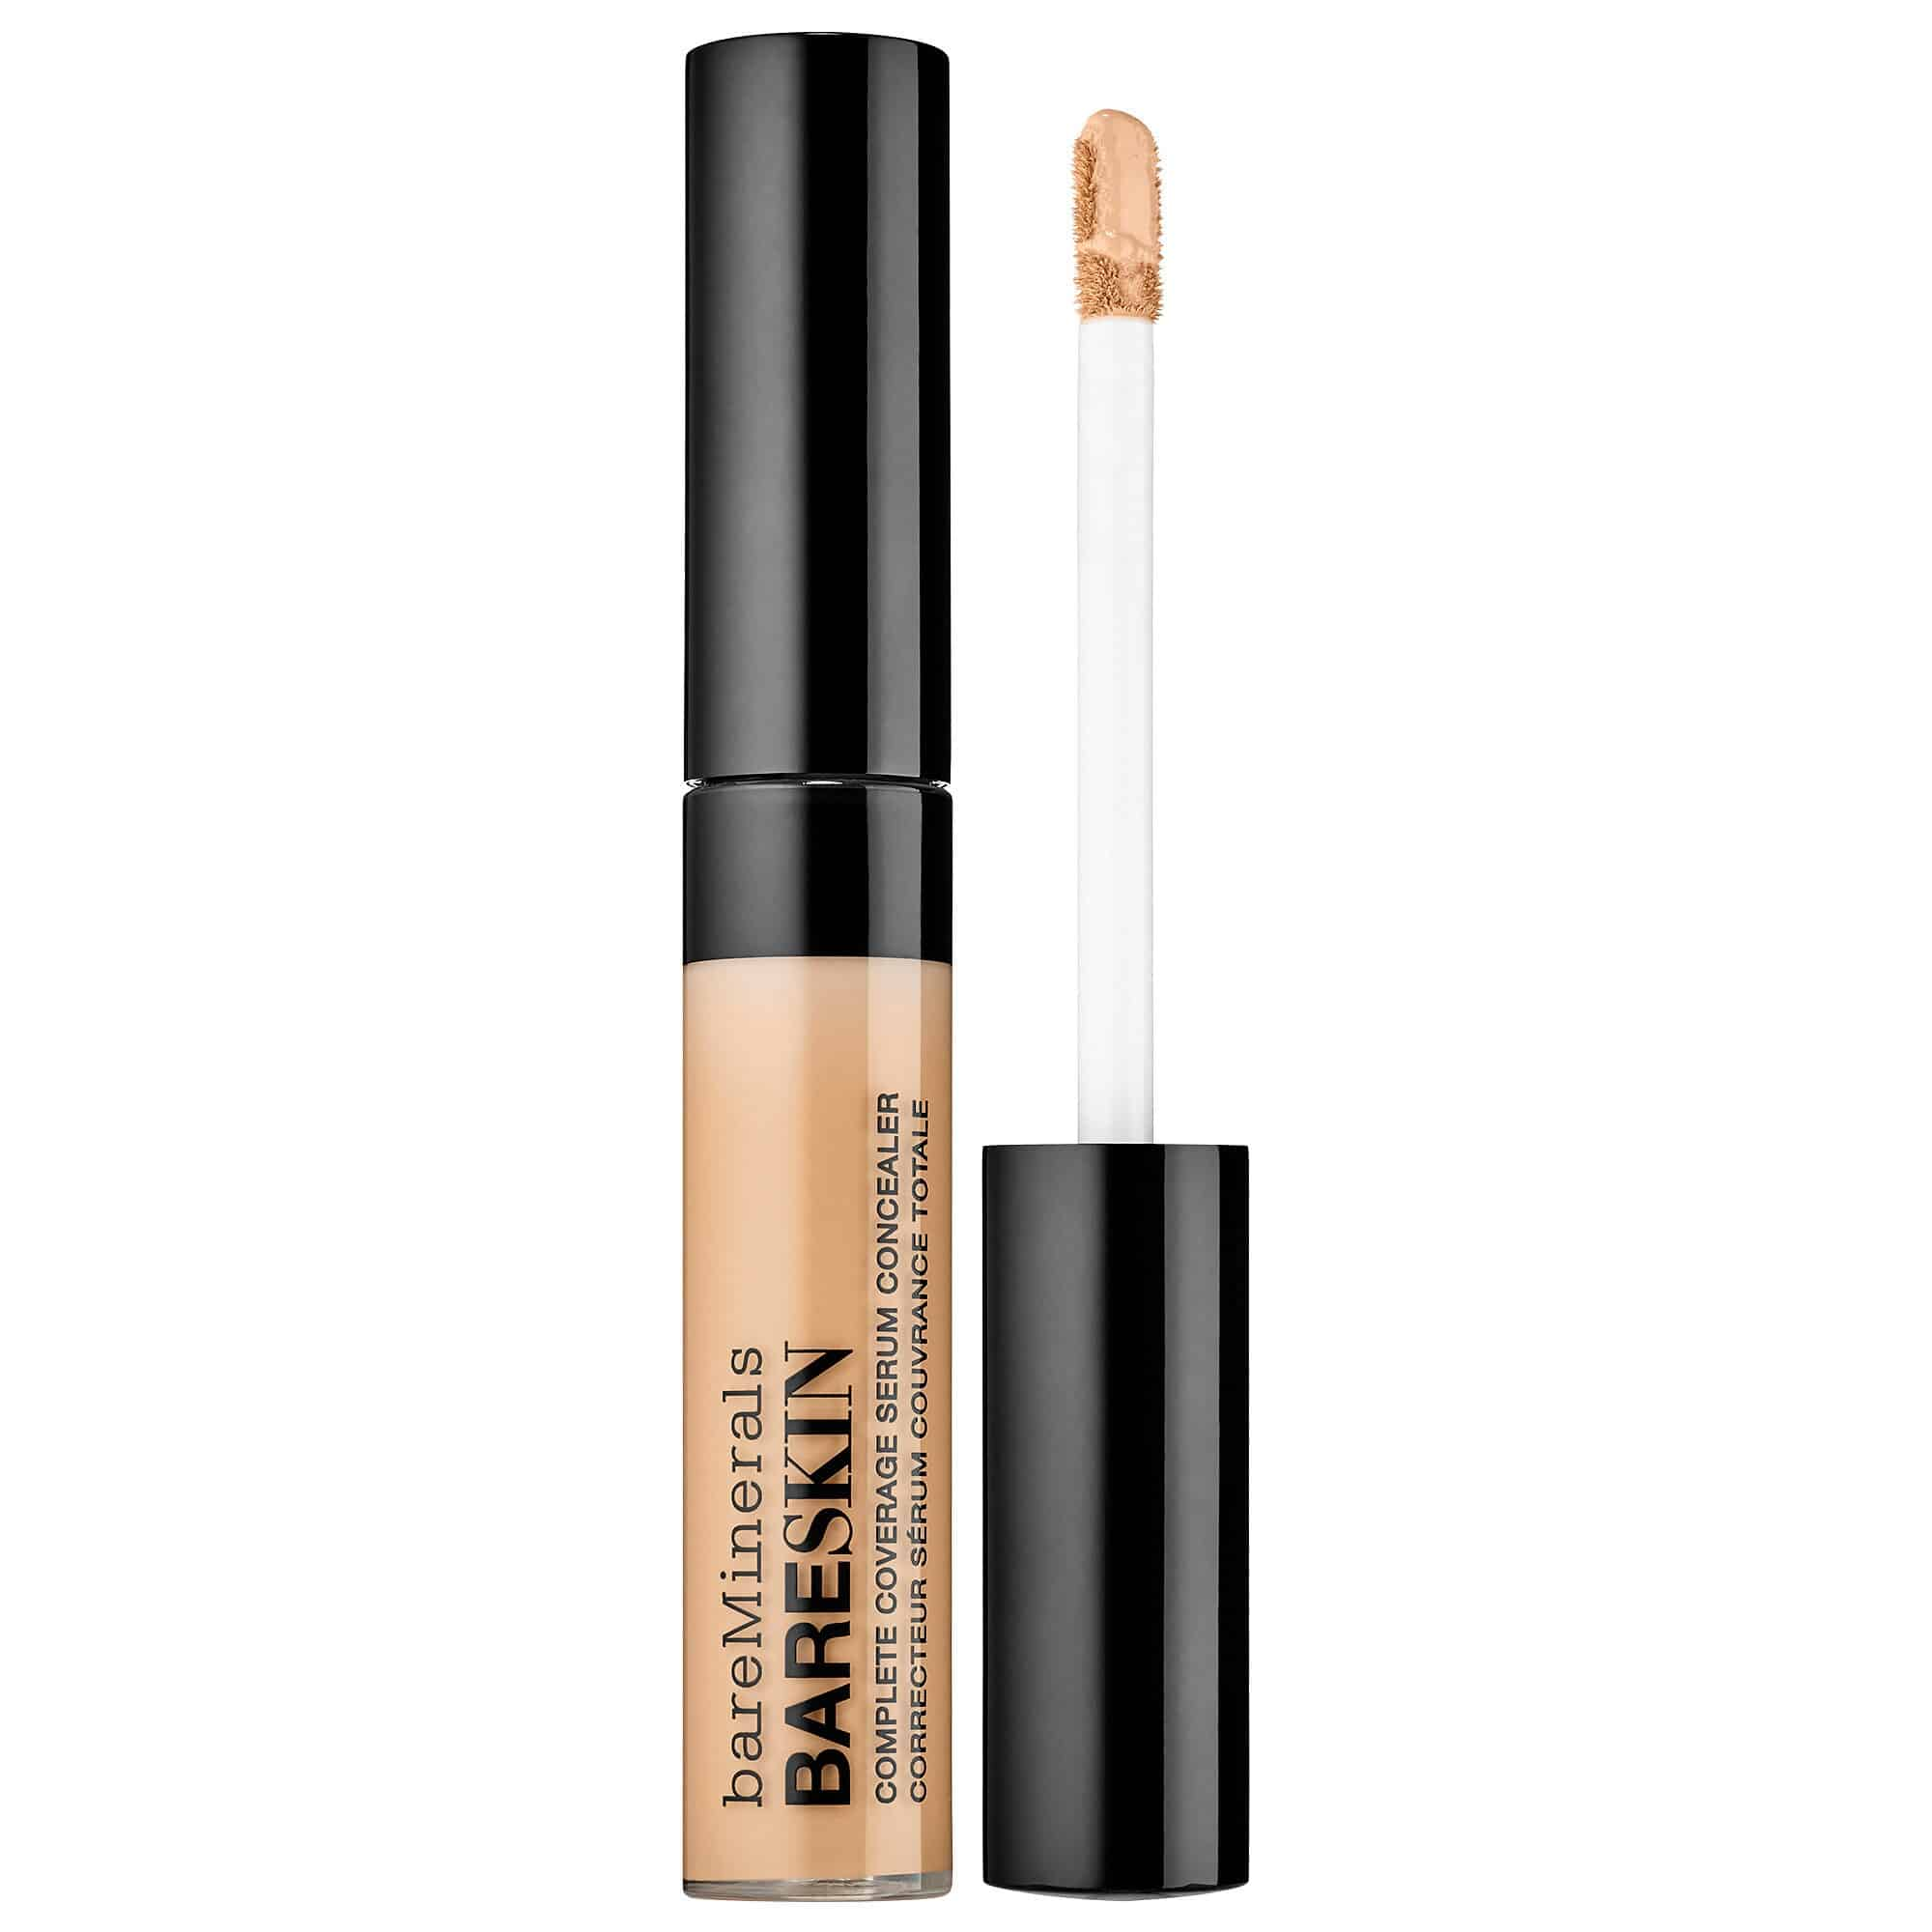 Bareskin Complete Coverage Serum Light Concealer 1